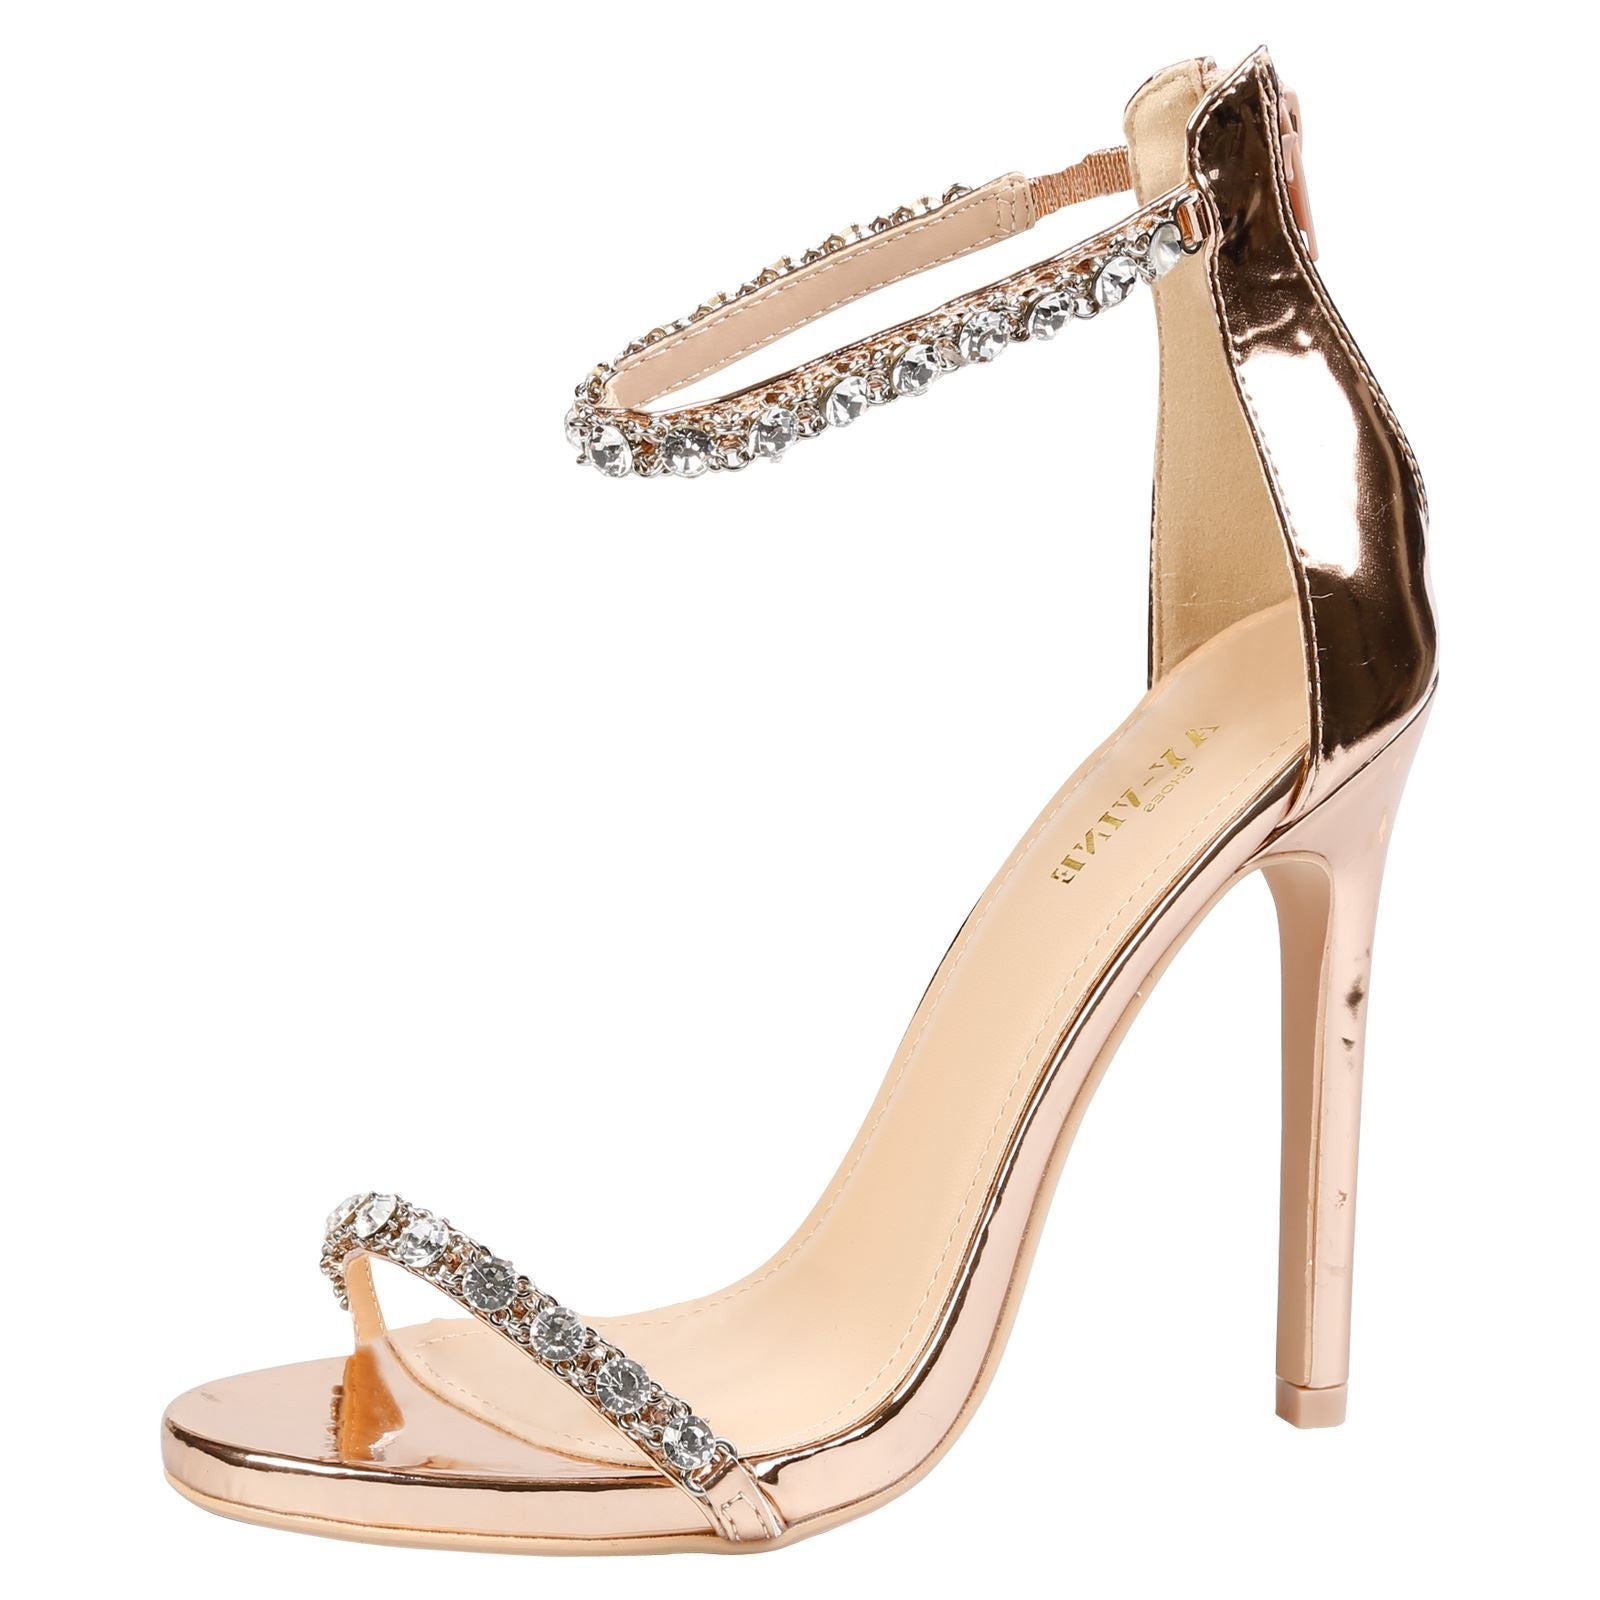 Laura Diamante Ankle Strap Sandals in Rose Gold